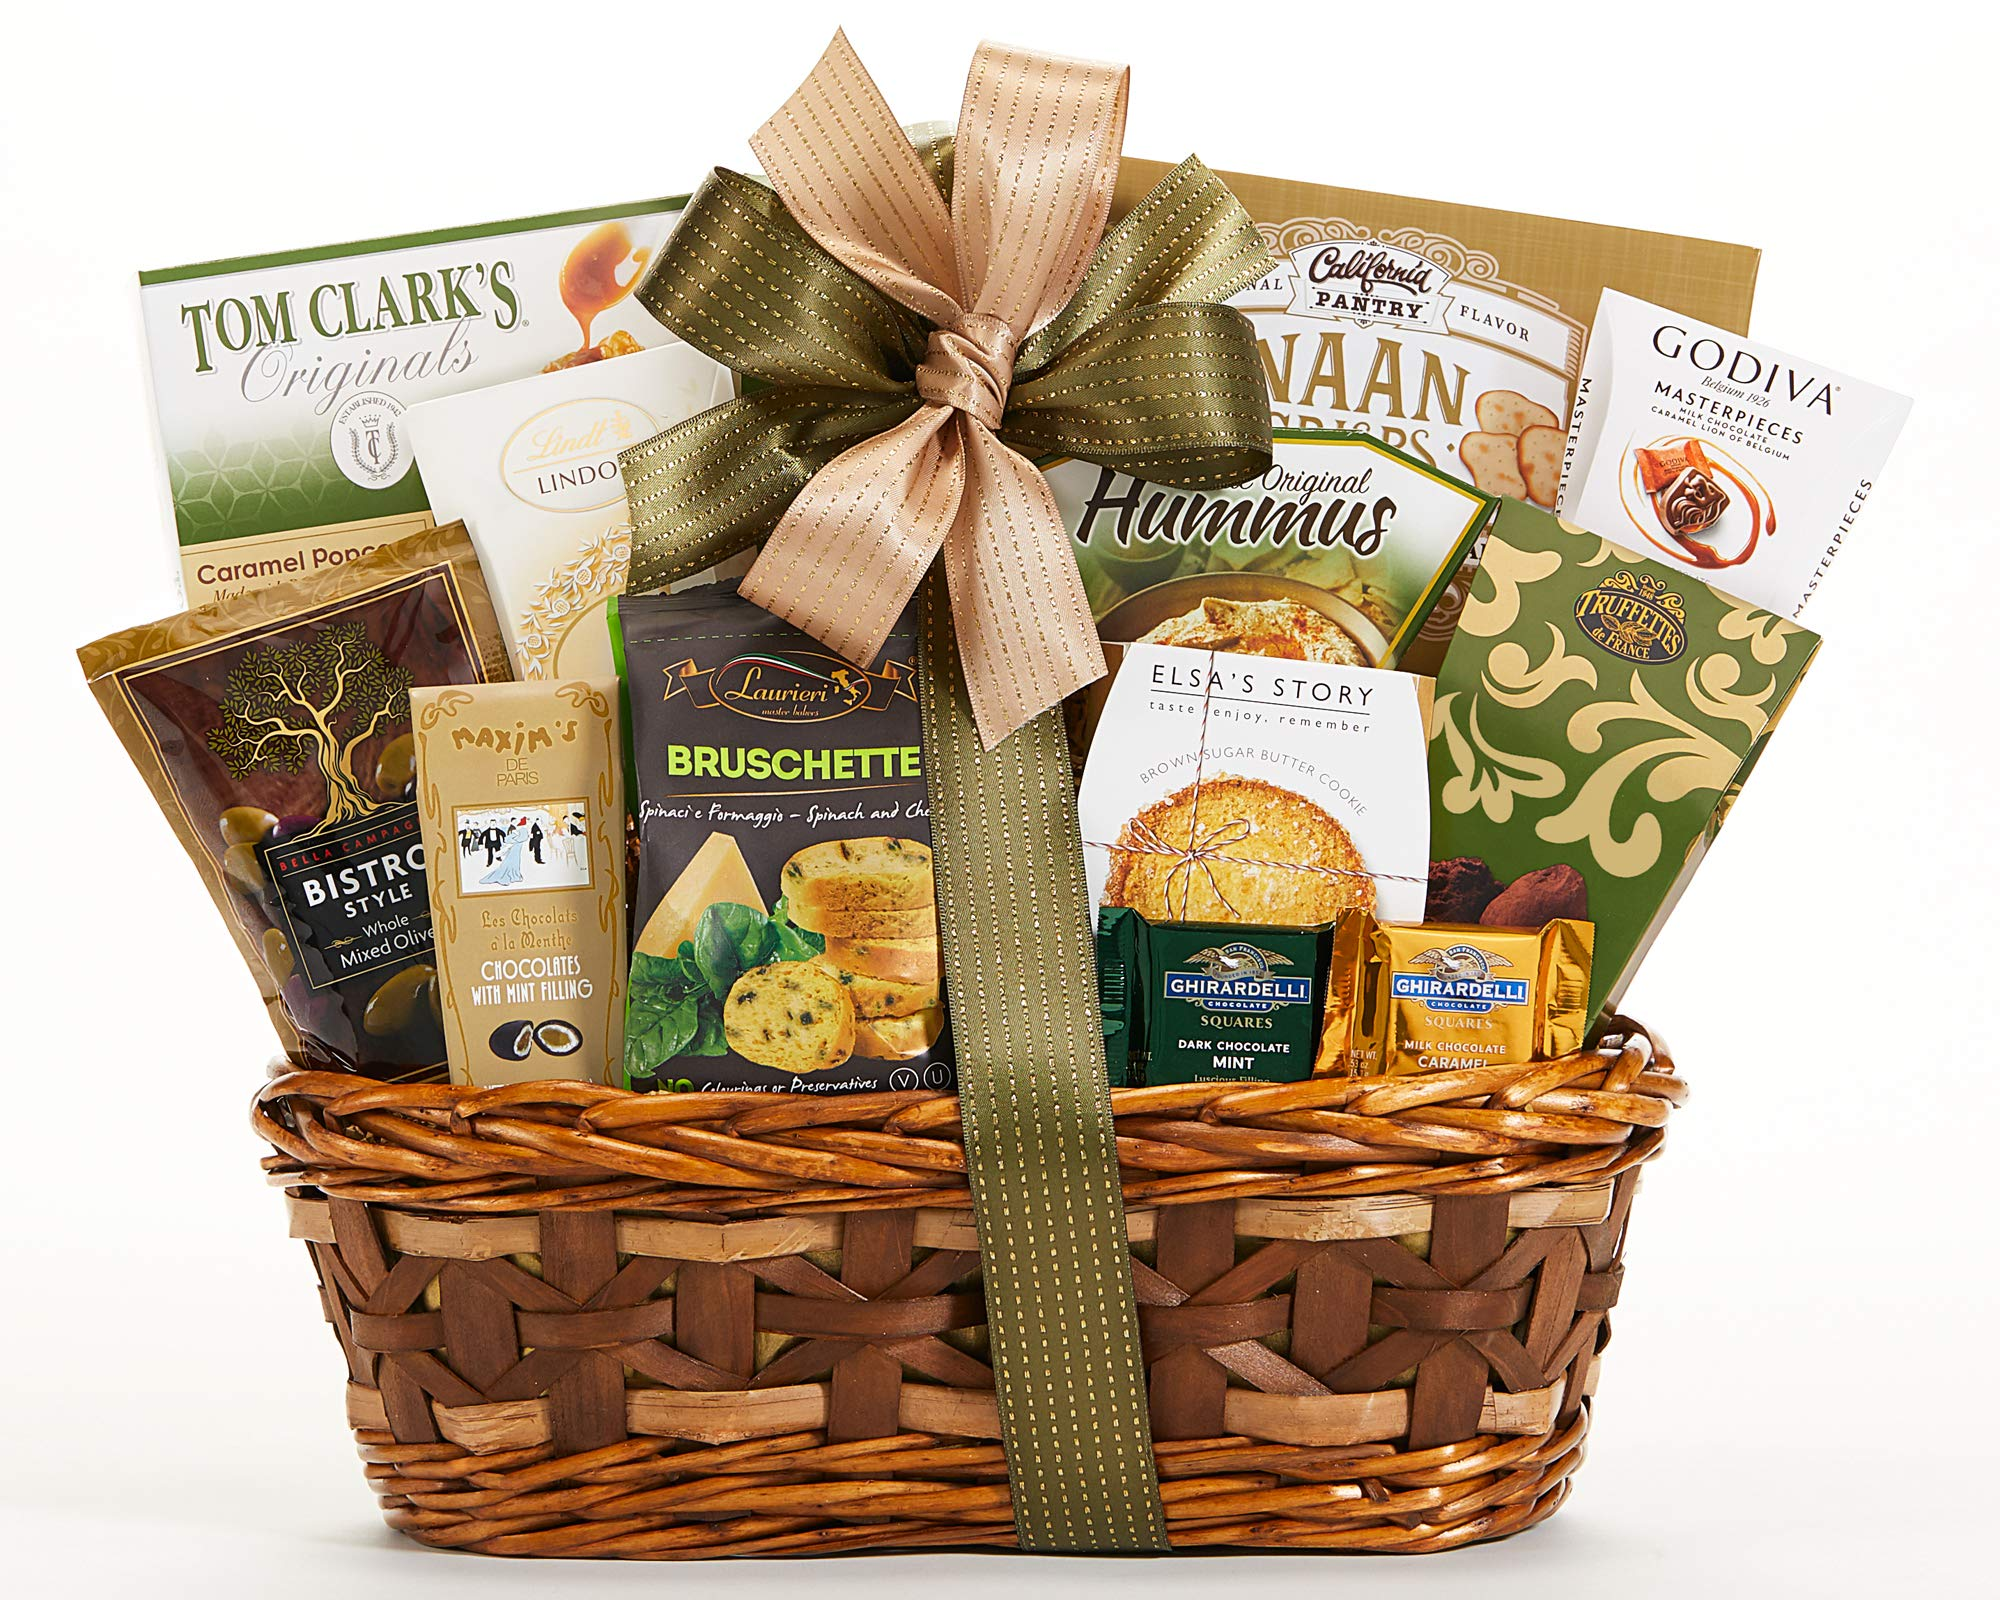 Wine Country Gift Basket Bon Appetit by Wine Country Gift Baskets (Image #1)